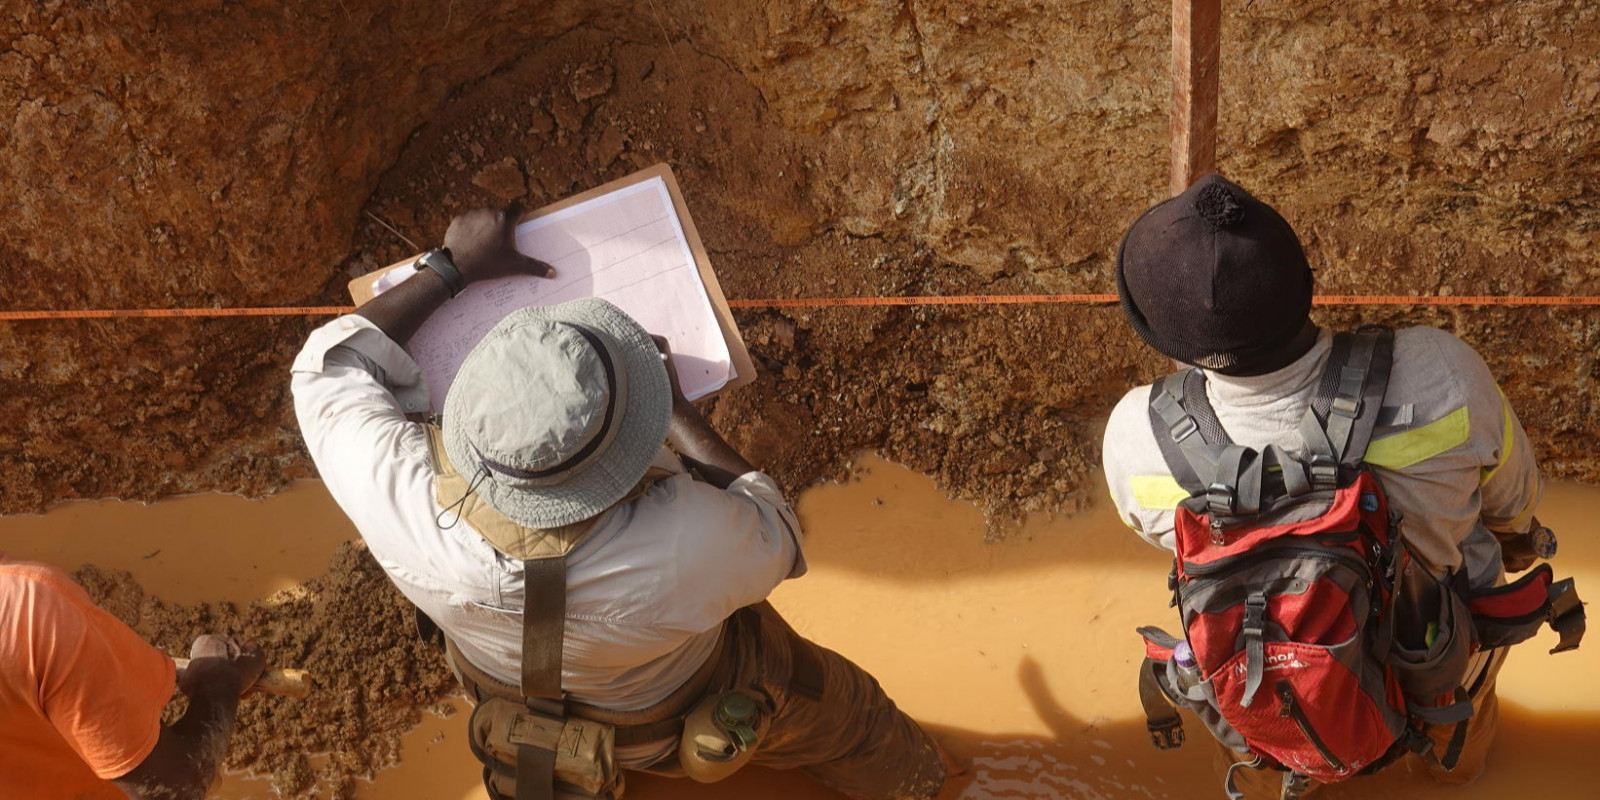 Predictive Discovery Ltd - Transformational Capital Raising To Rapidly Advance Kaninko Gold Discovery